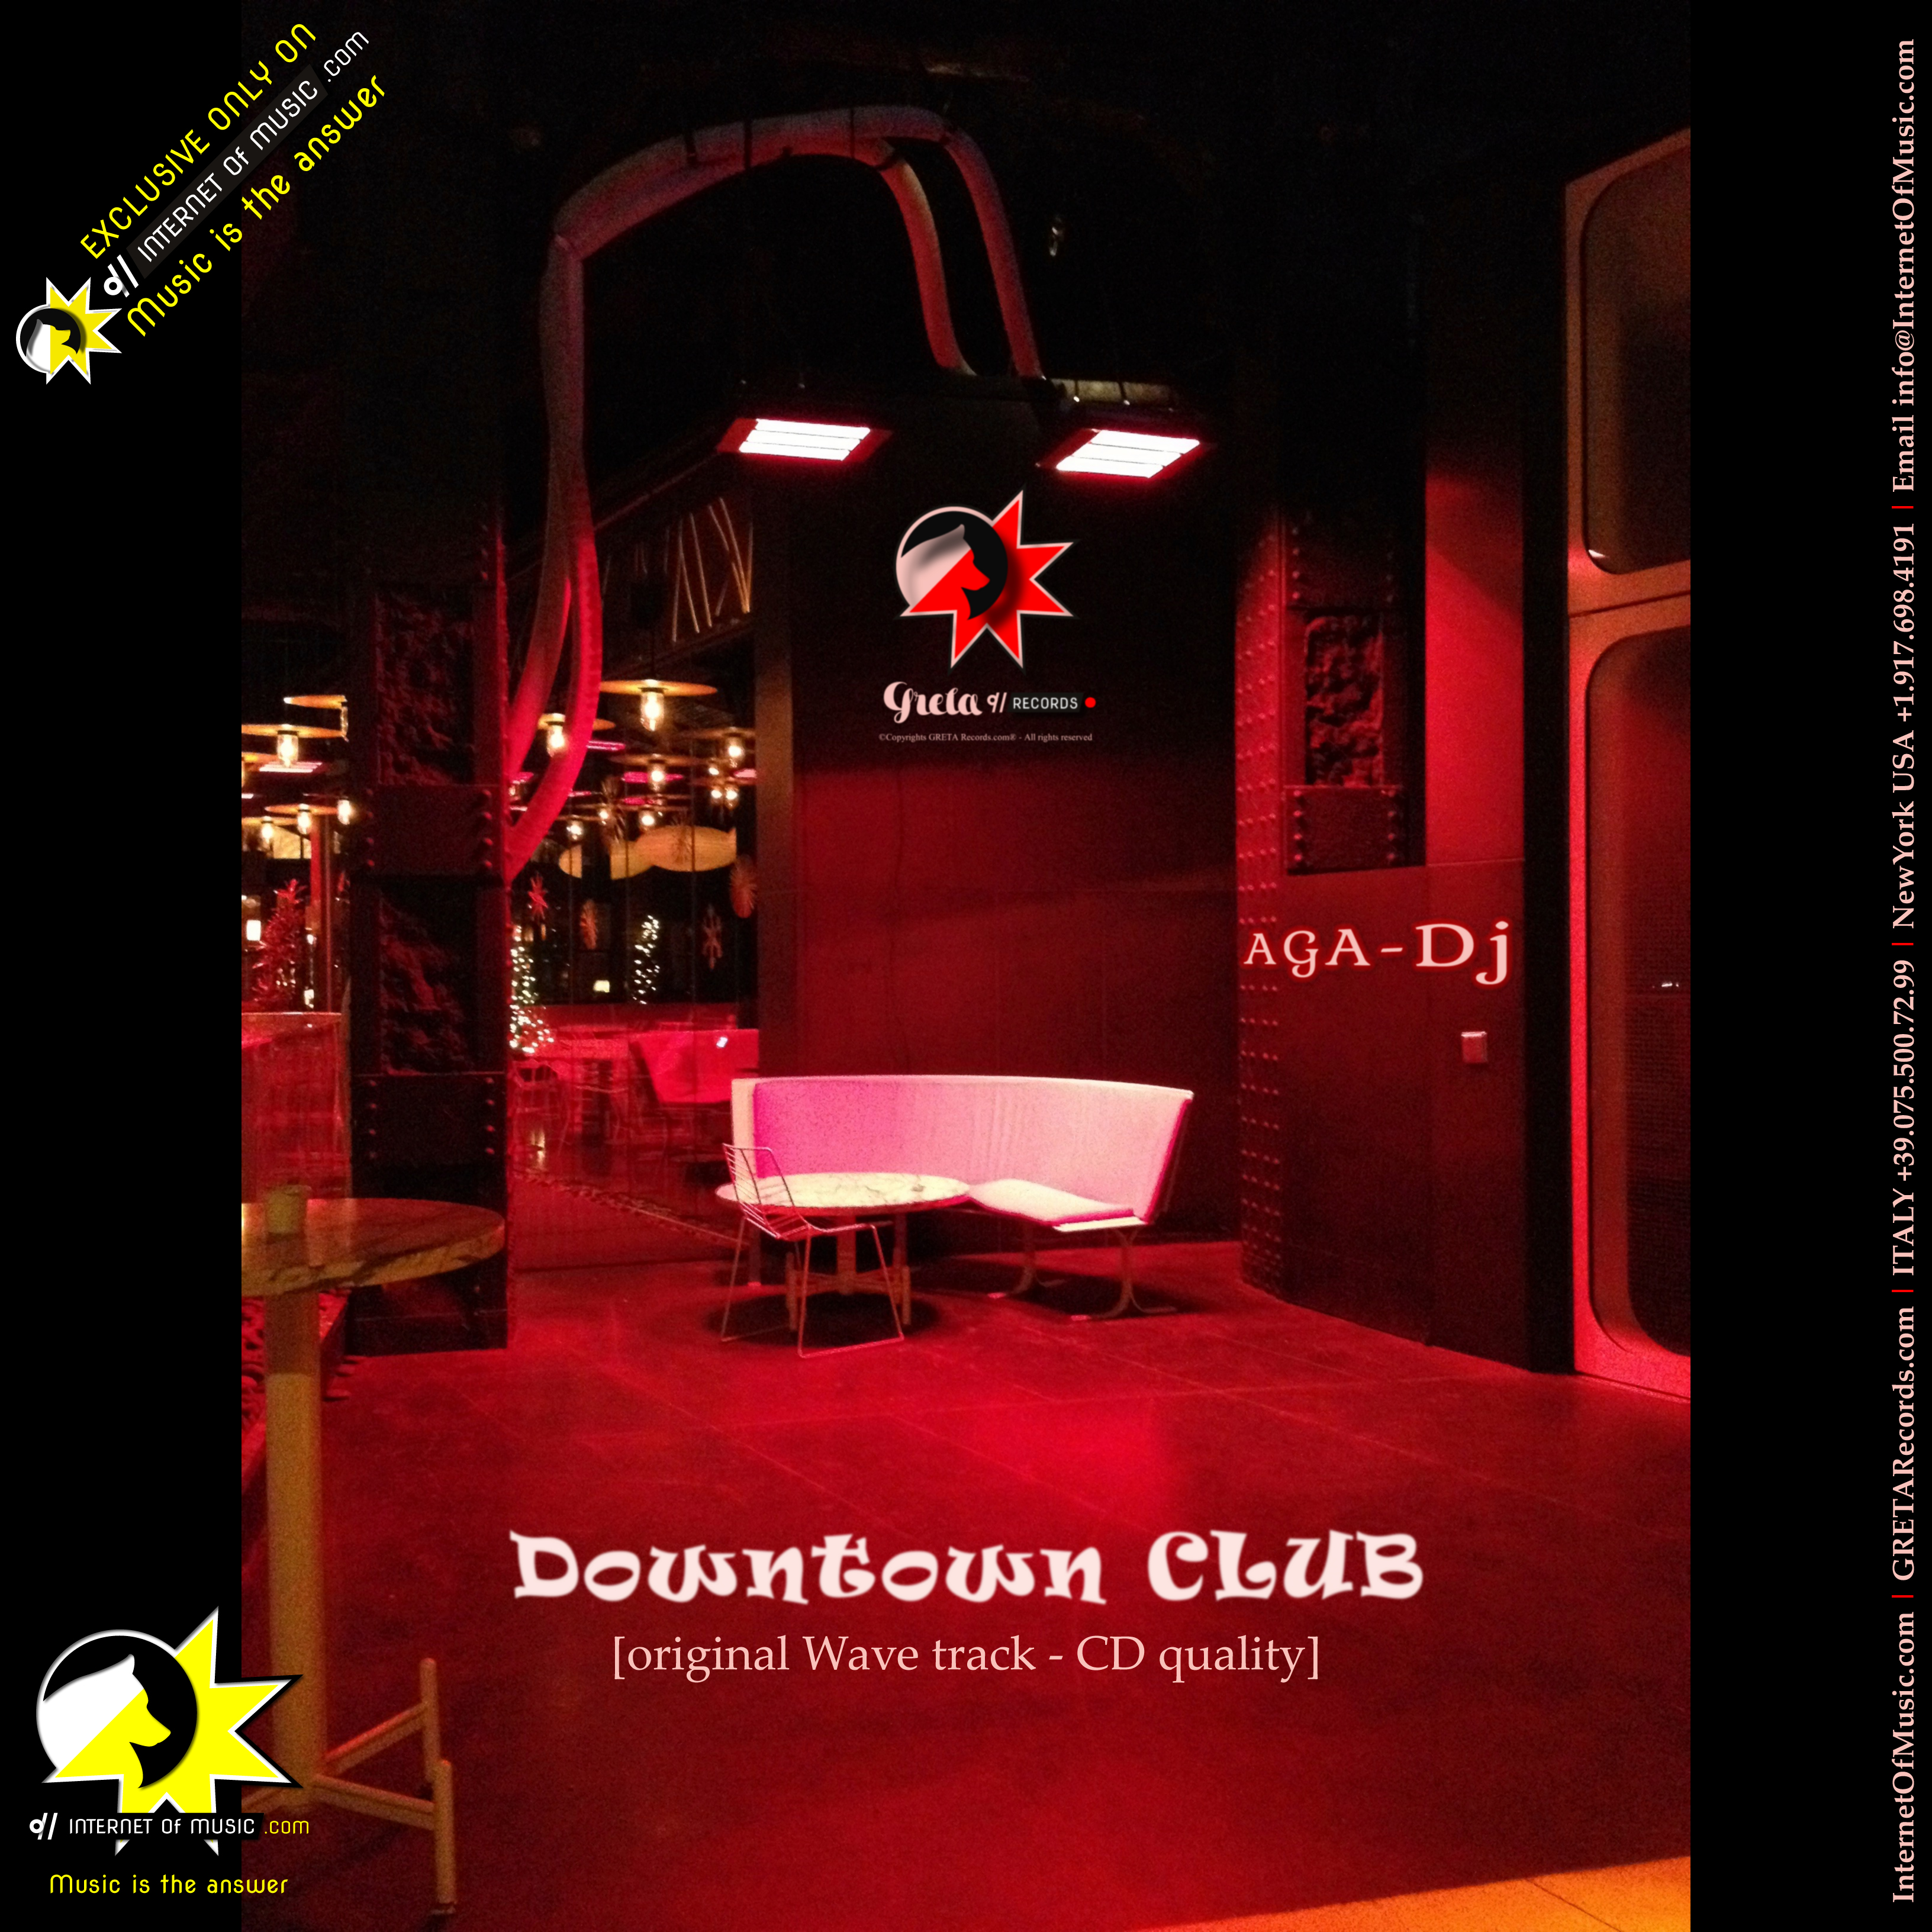 Downtown club aga dj deep house internet of music com for House music mp3